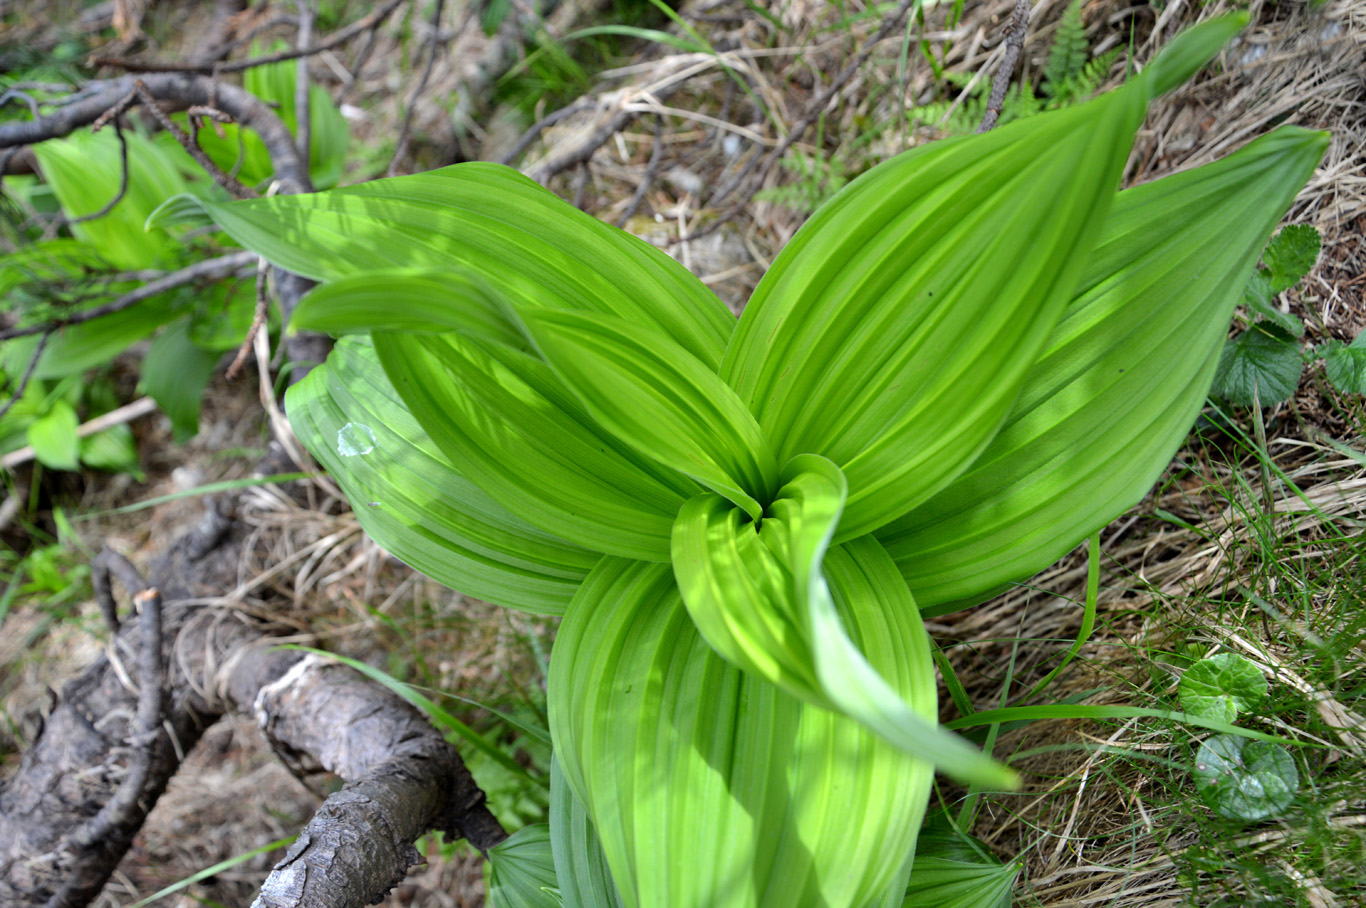 Beautiful leaves of Veratrum, also called corn lily